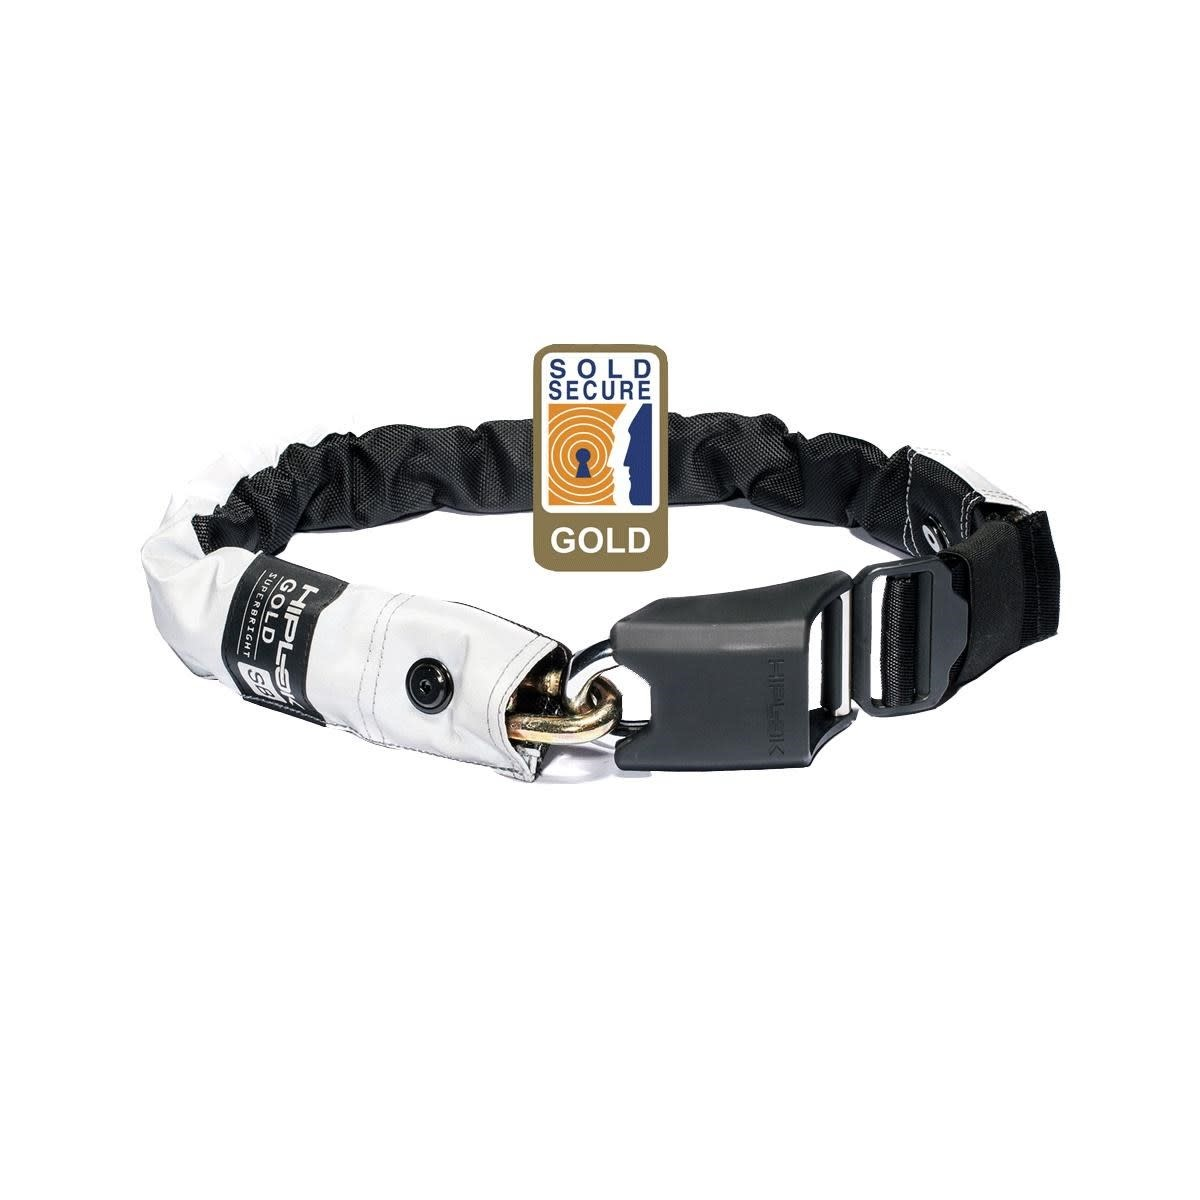 HIPLOK GOLD WEARABLE CHAIN LOCK 10MM X 85CM - WAIST 24-44 INCHES (GOLD SOLD SECURE) HIGH VISIBILITY: HI-VIZ 10MM X 85CM